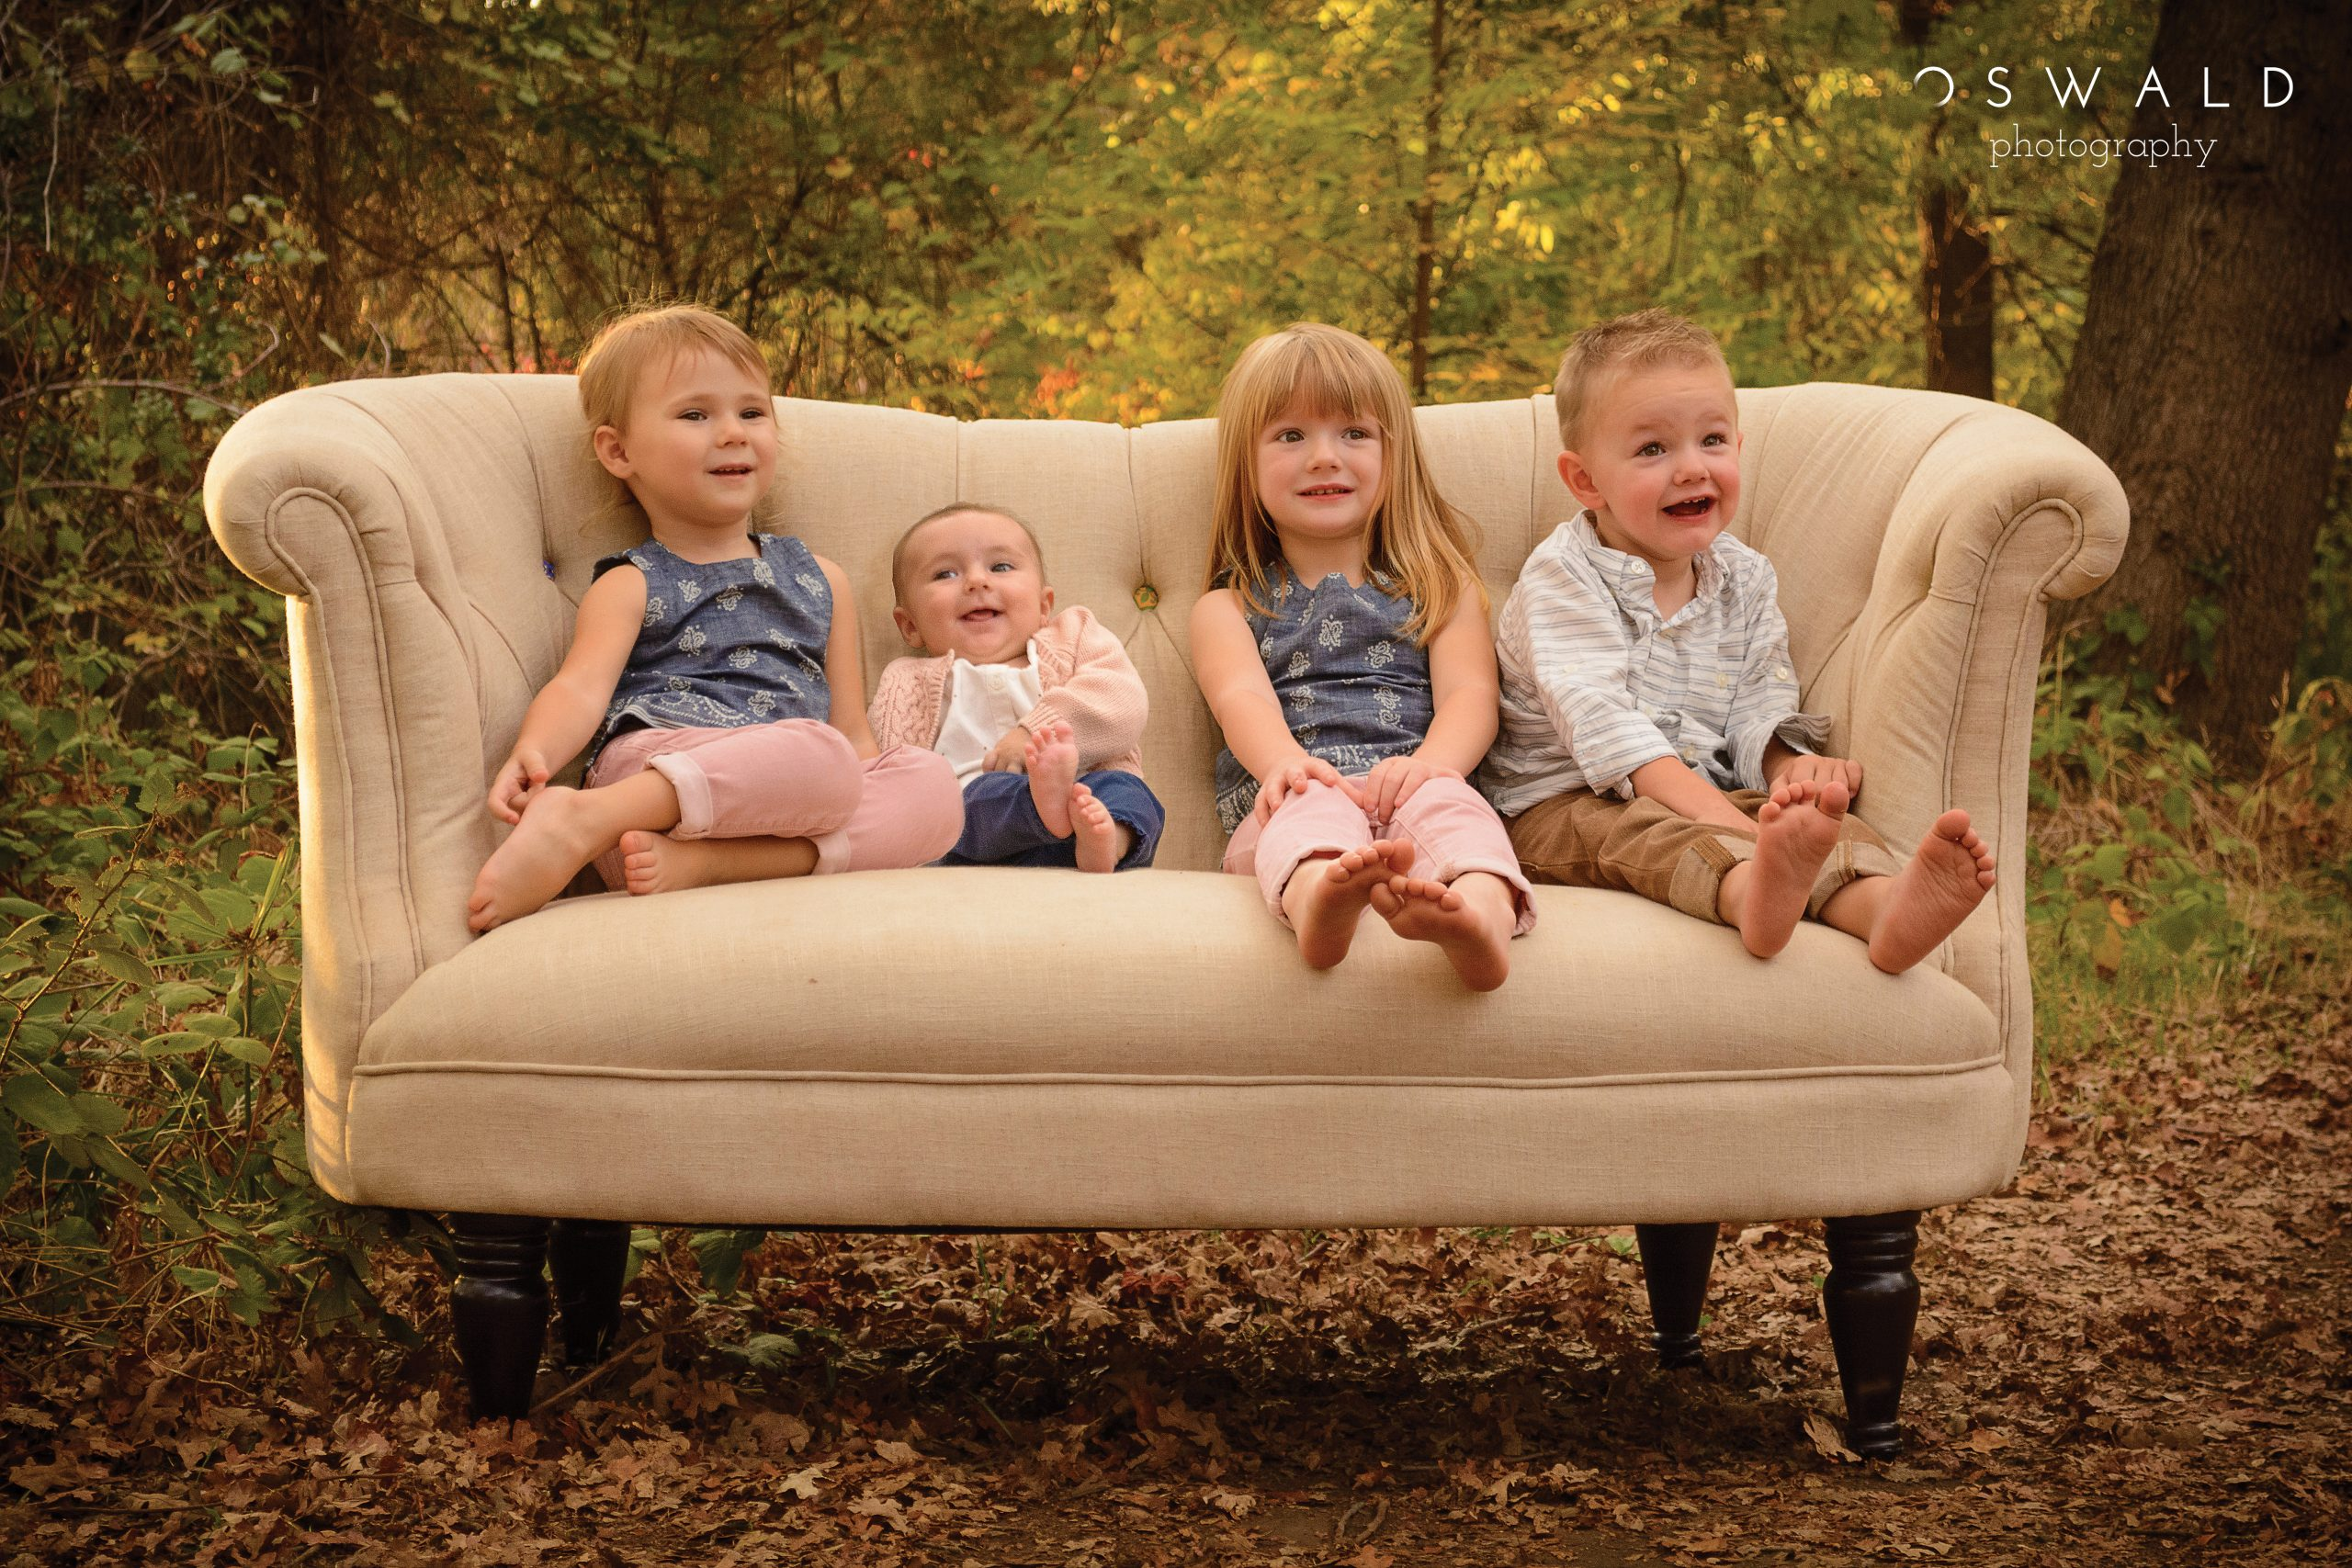 A photo of a group of four barefoot children pose for a portrait on a couch in the woods.